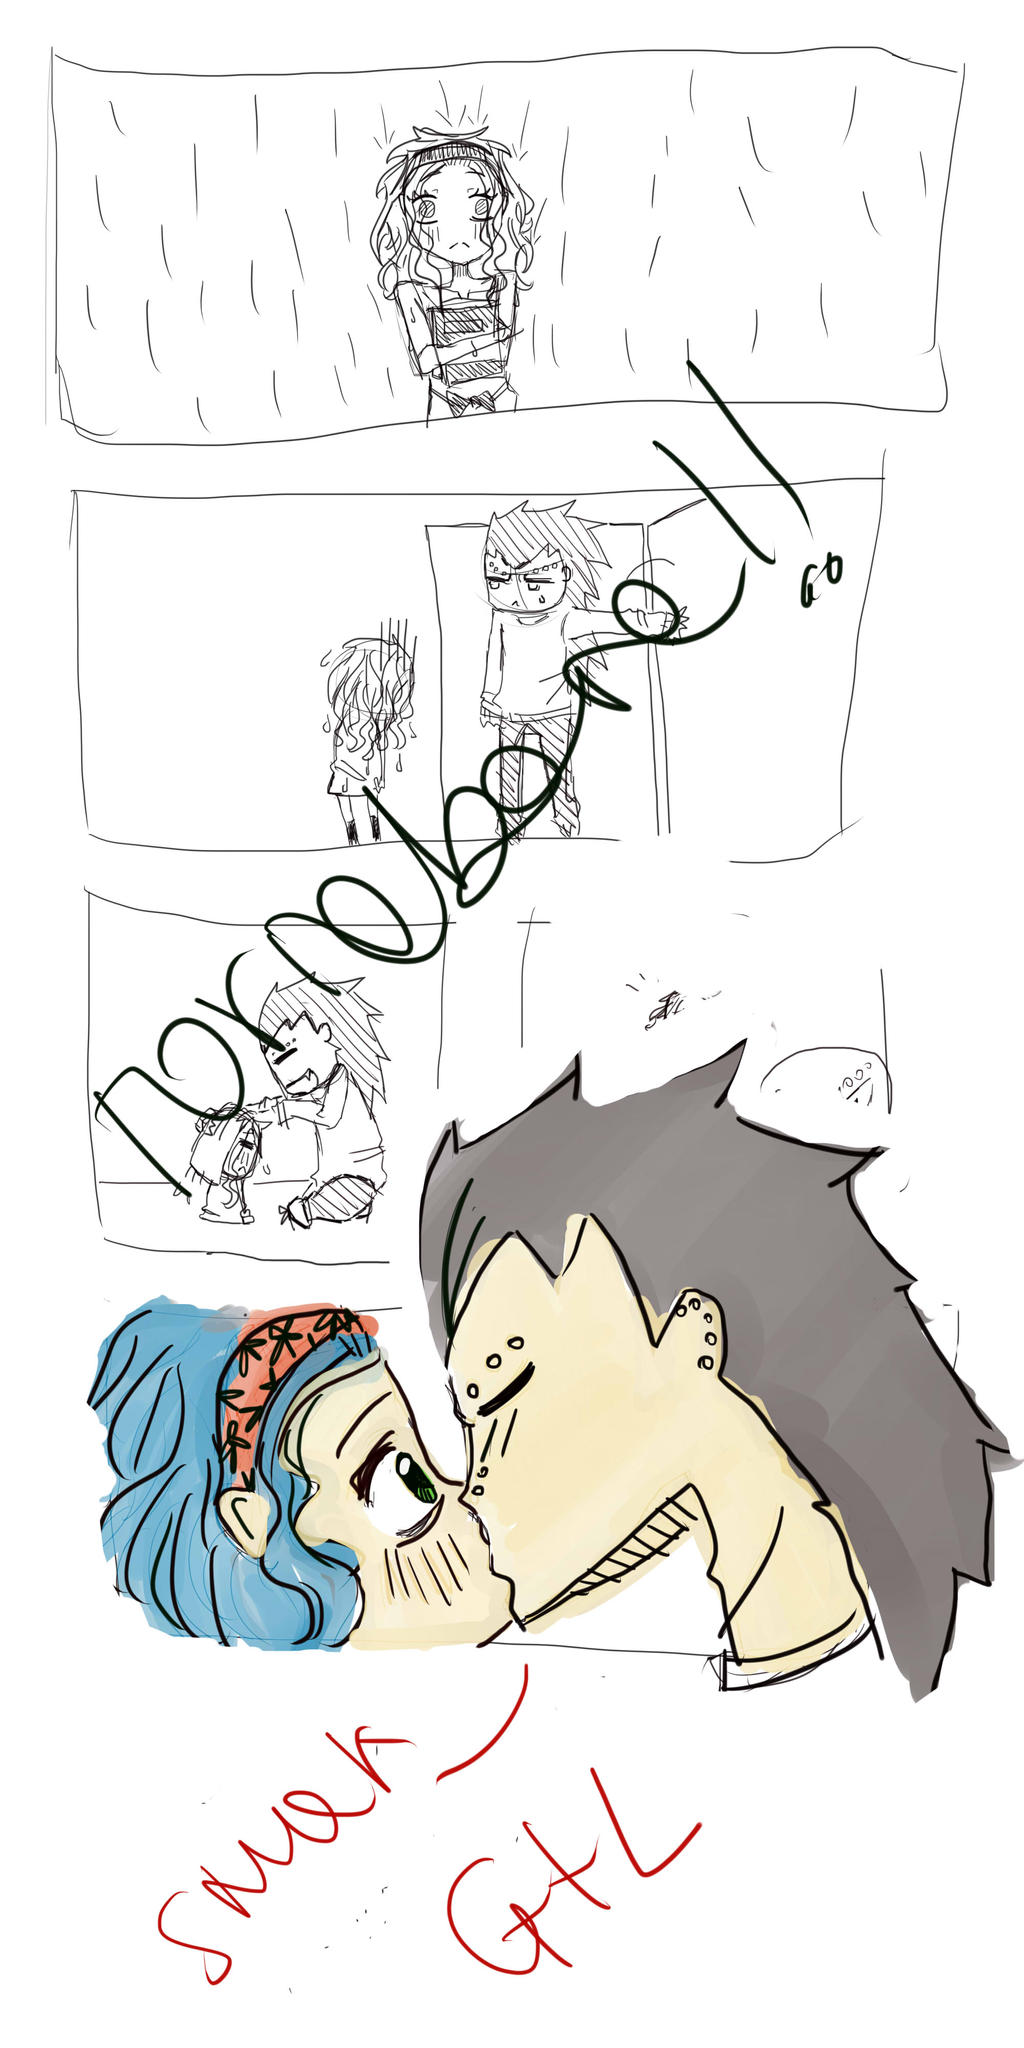 gajeel and levy kiss by toriabara on deviantart